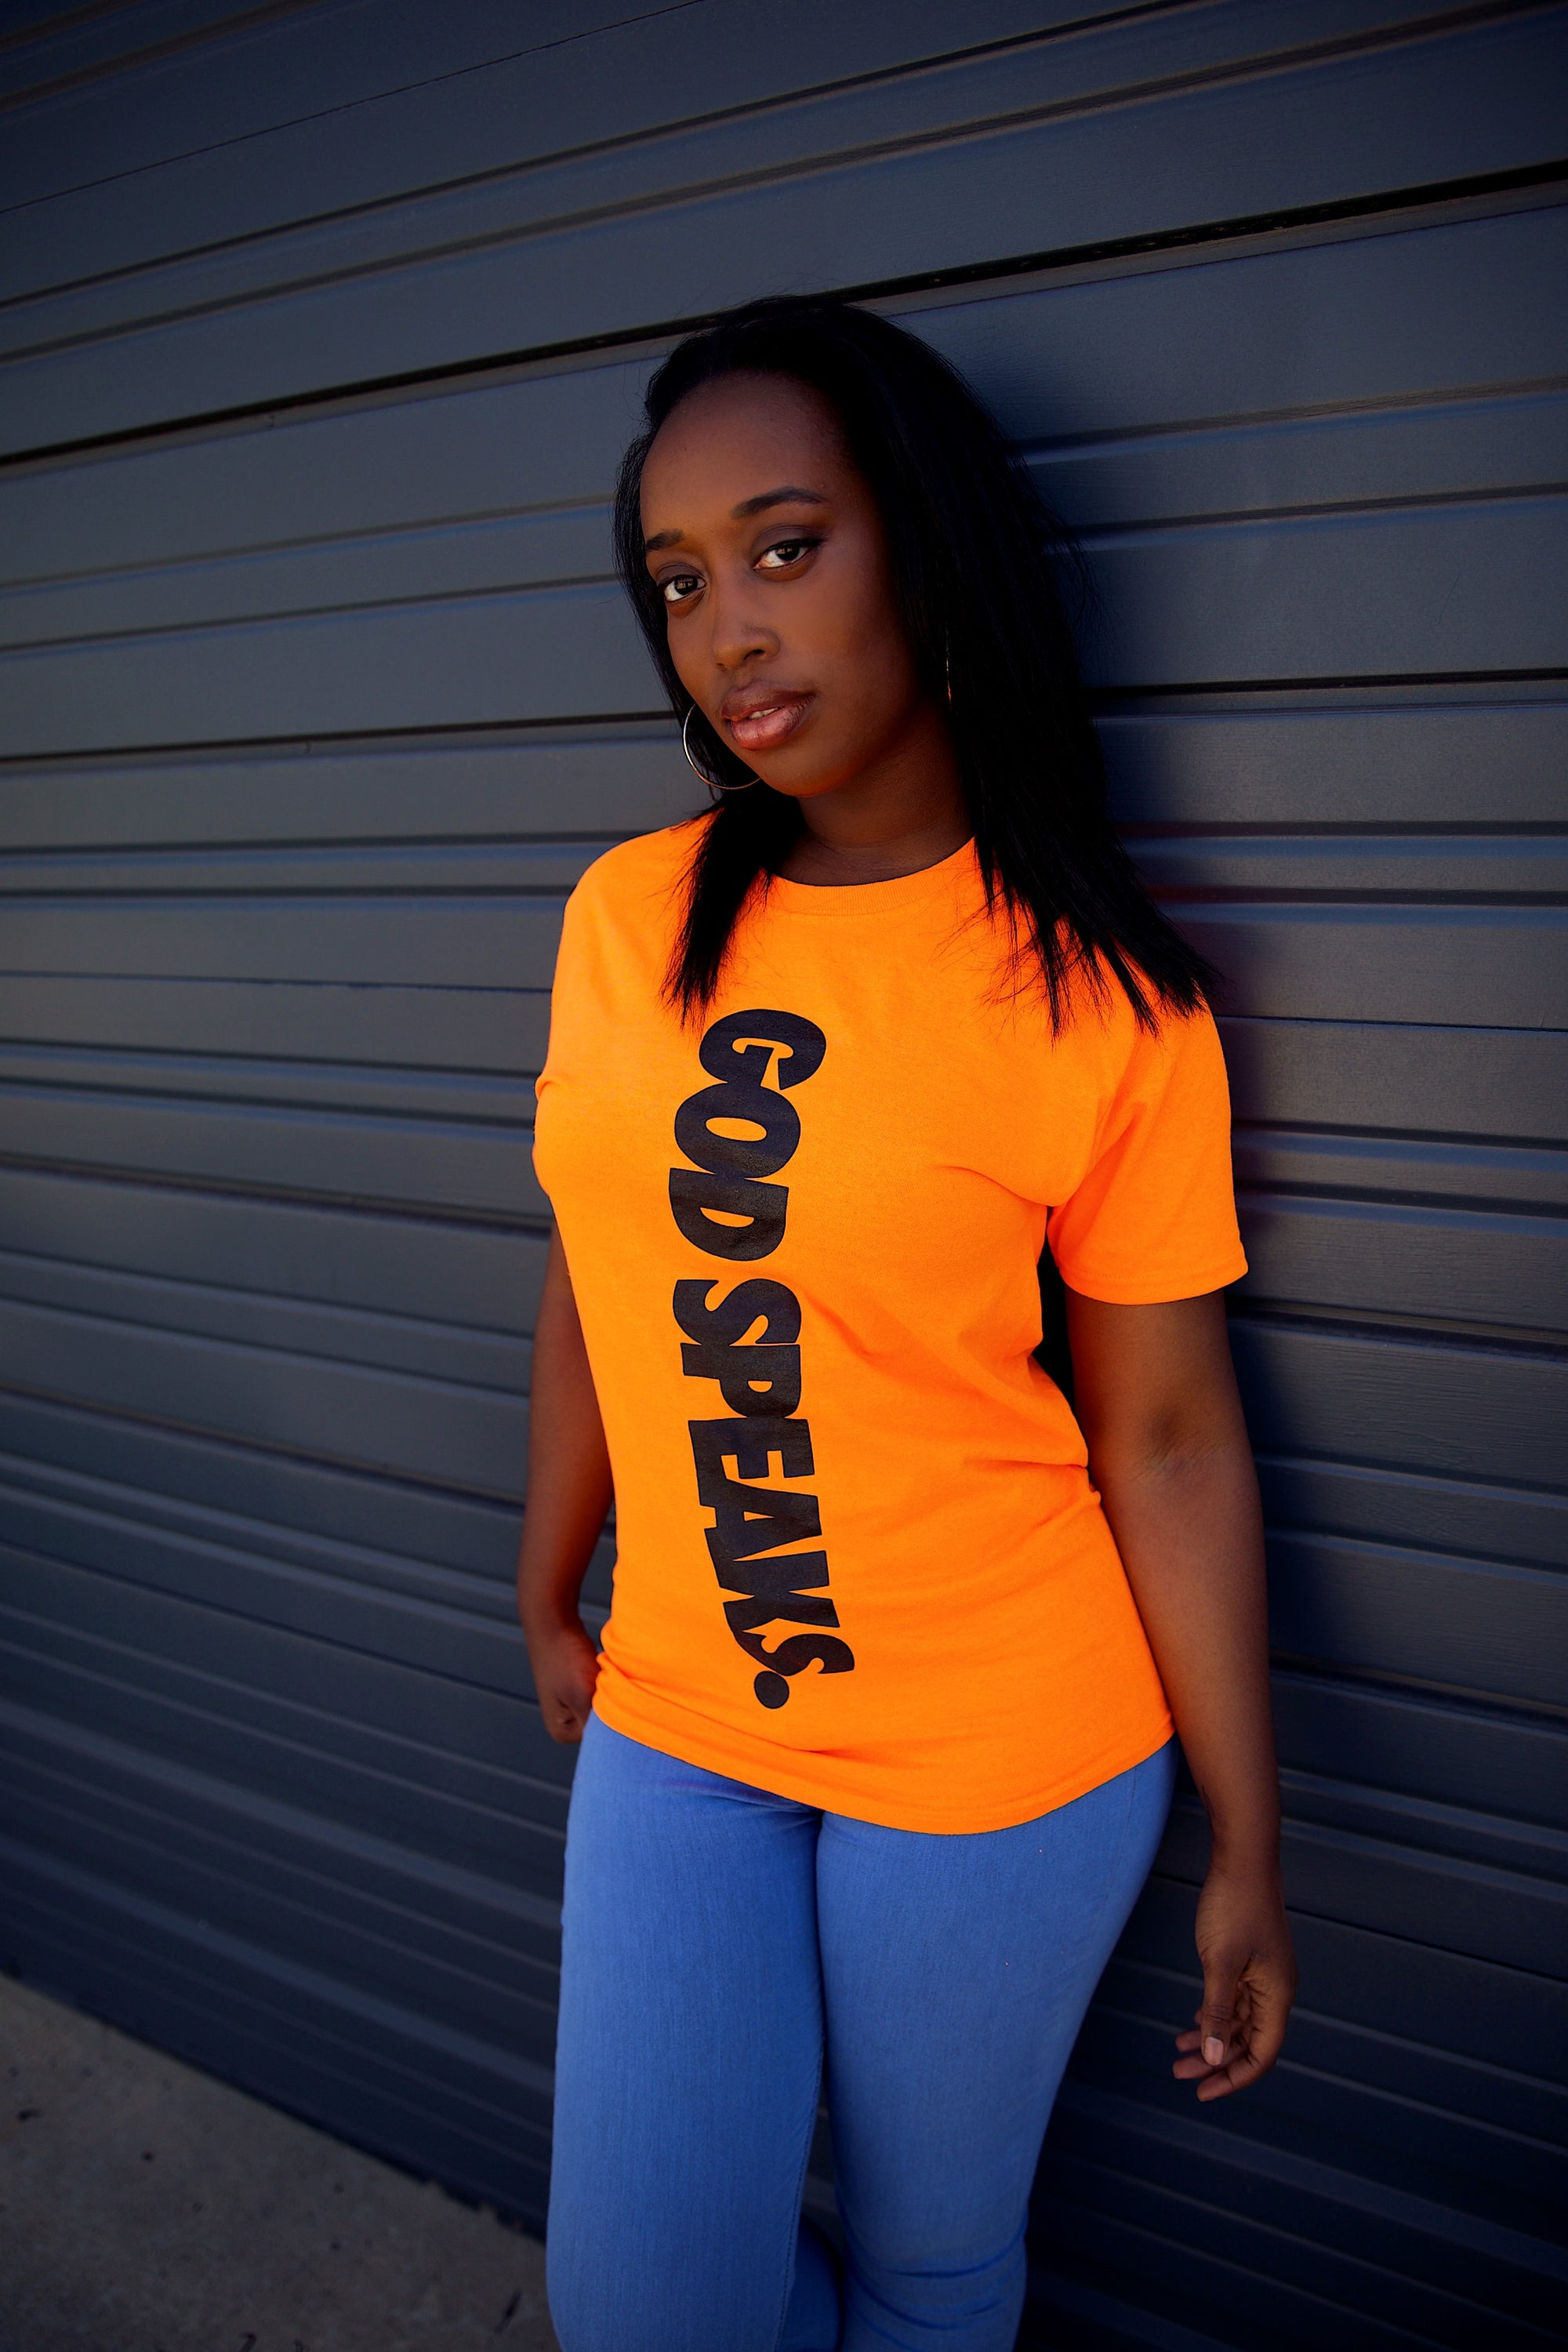 GOD SPEAKS TEE (NEON ORANGE/BLACK)